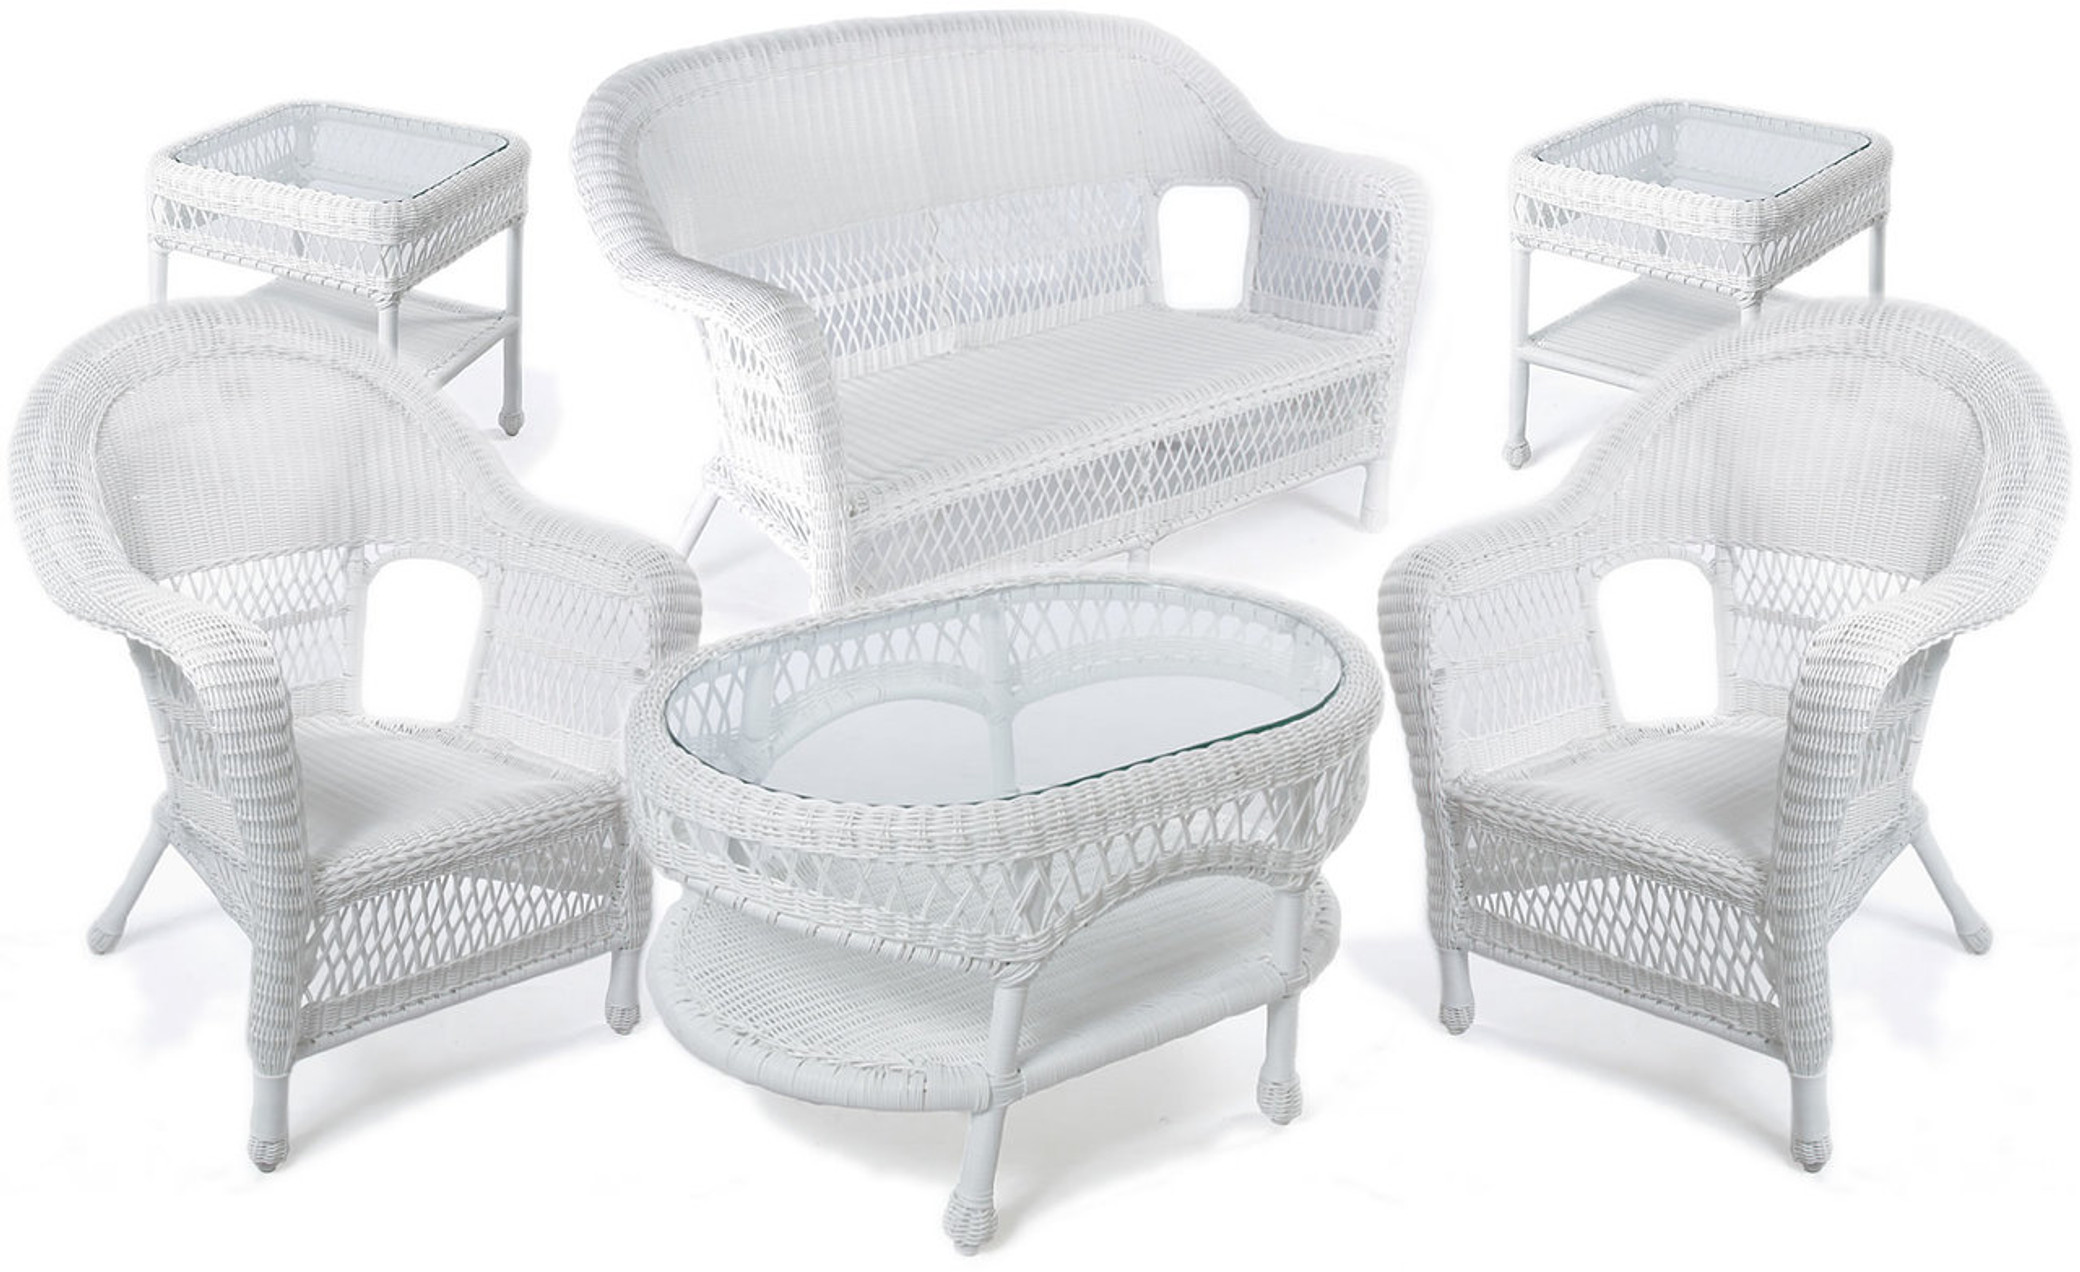 Trees And Trends Patio Furniture. And Trees And Trends Patio Furniture  Erwin U0026 Sons Antigua